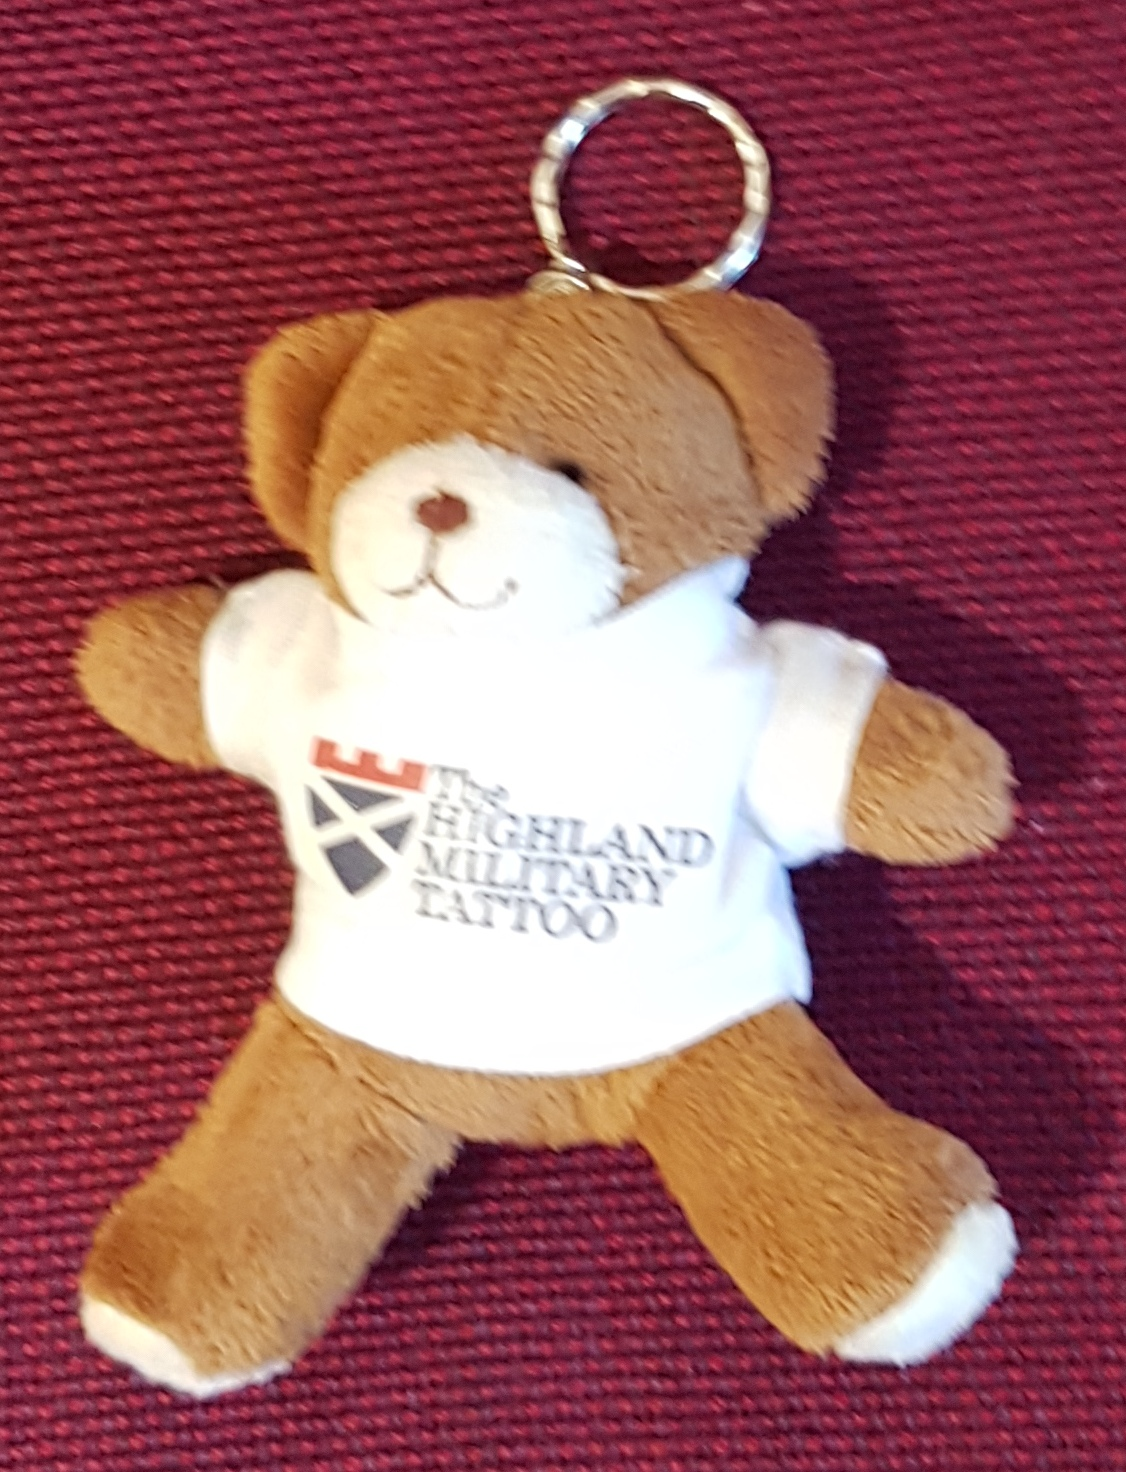 The Highland Military Tattoo Keyring